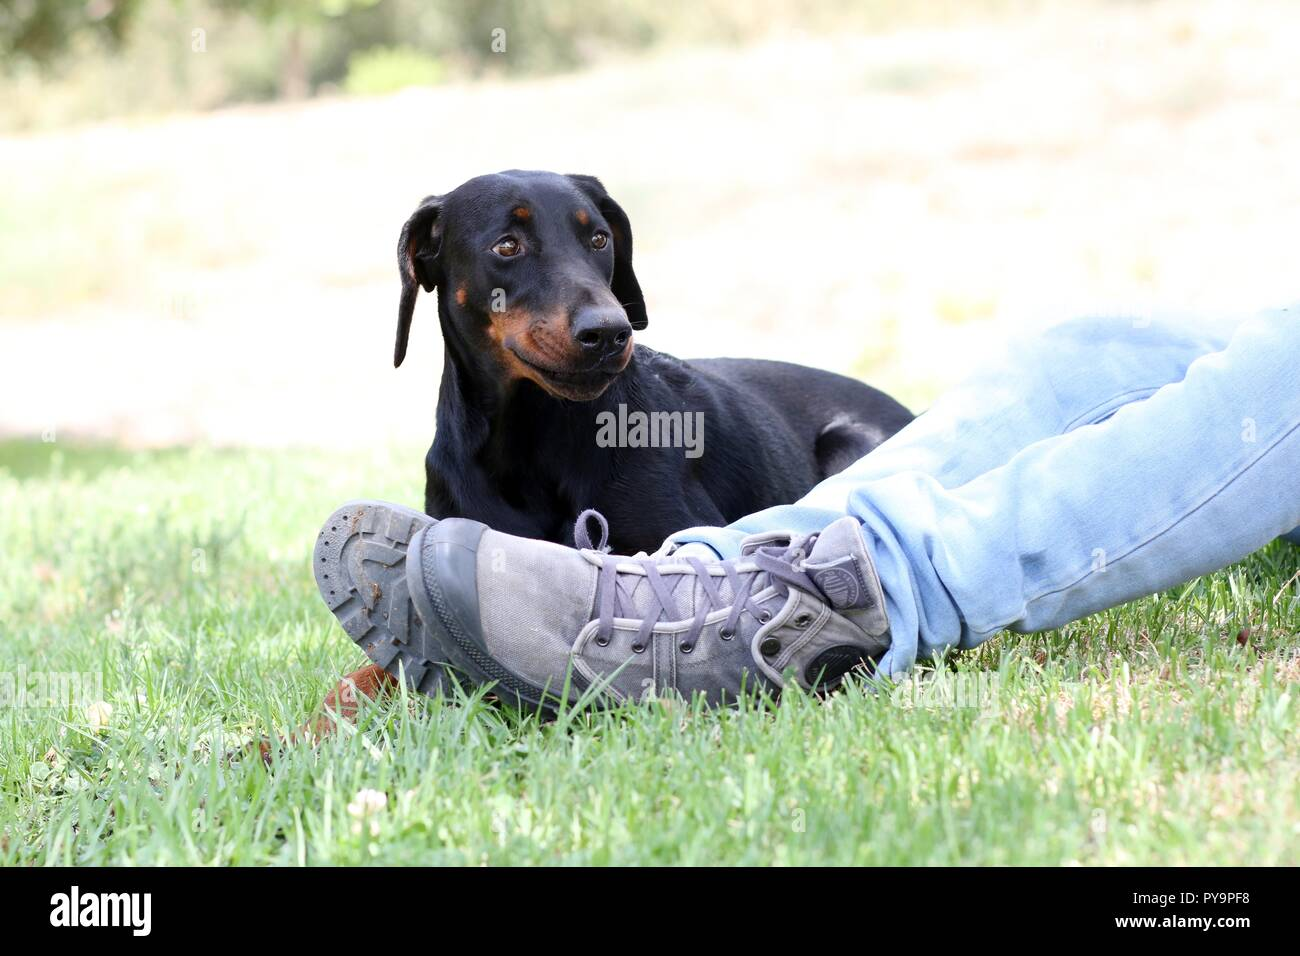 A dog lay on the grass next to her owner in the park - Stock Image